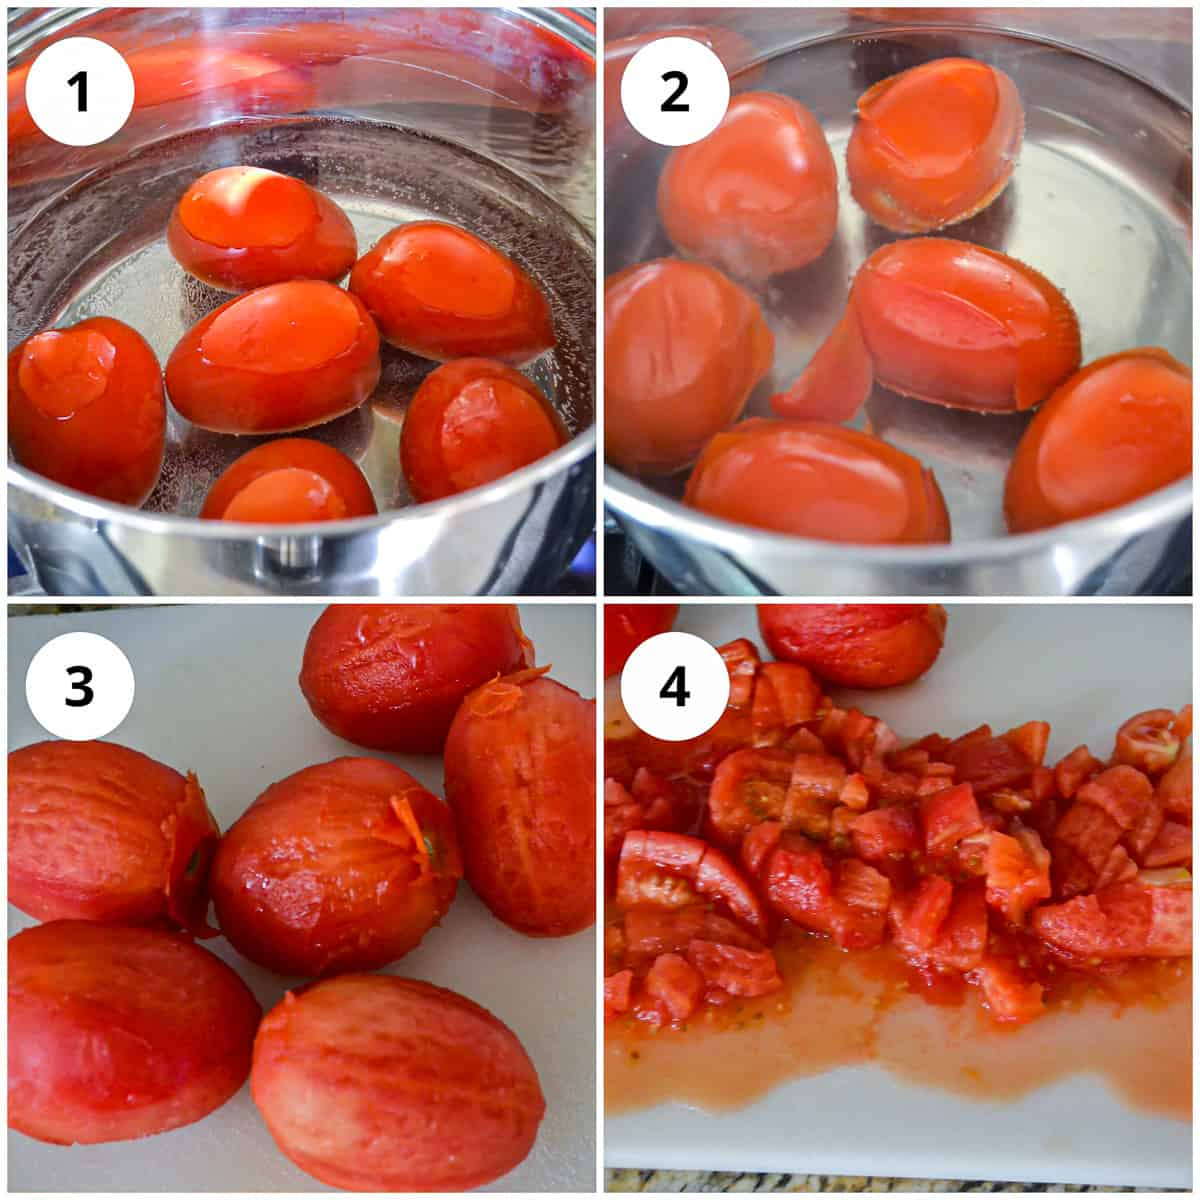 Boiling and dicing the tomatoes